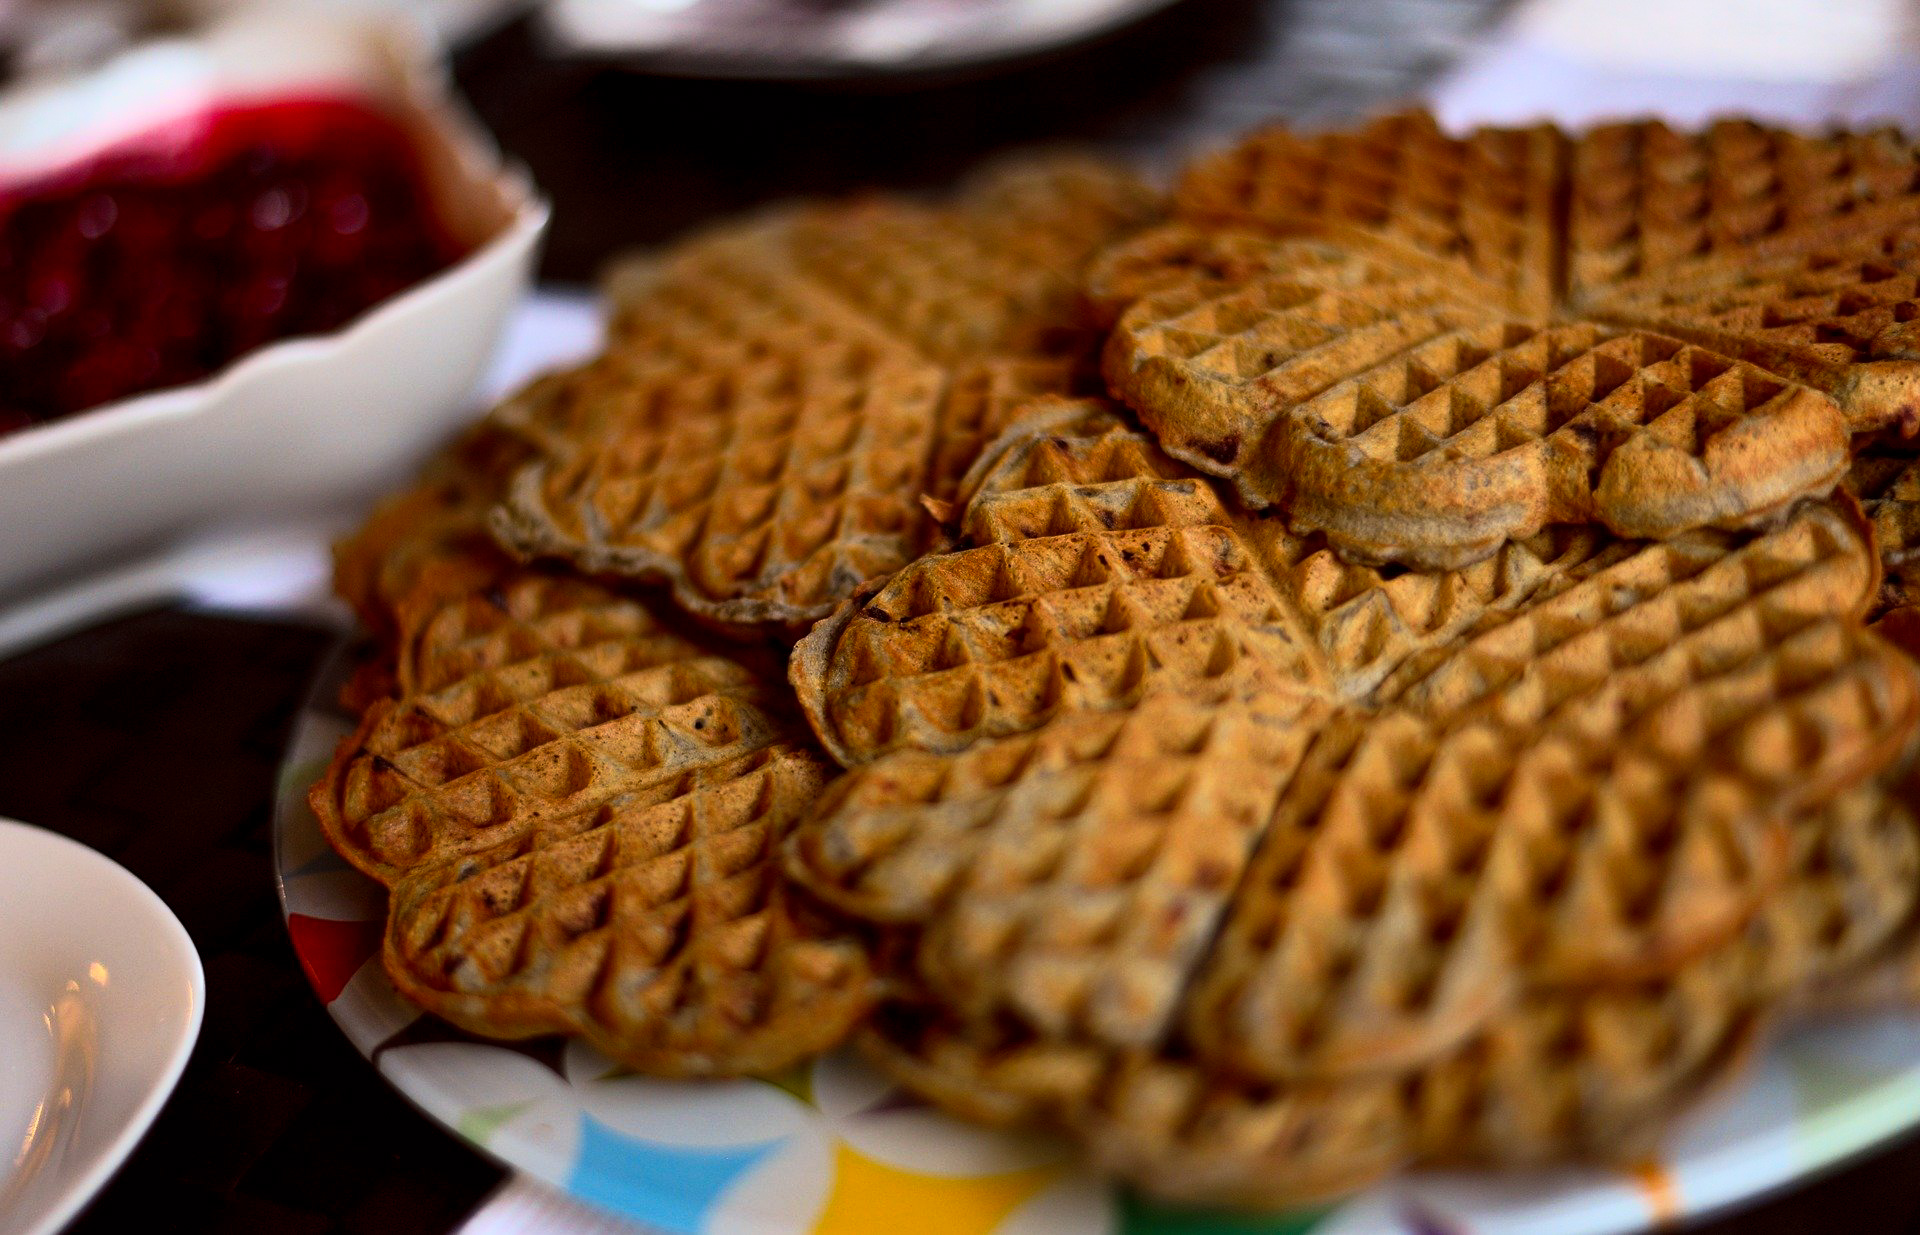 Brown cheese on waffles